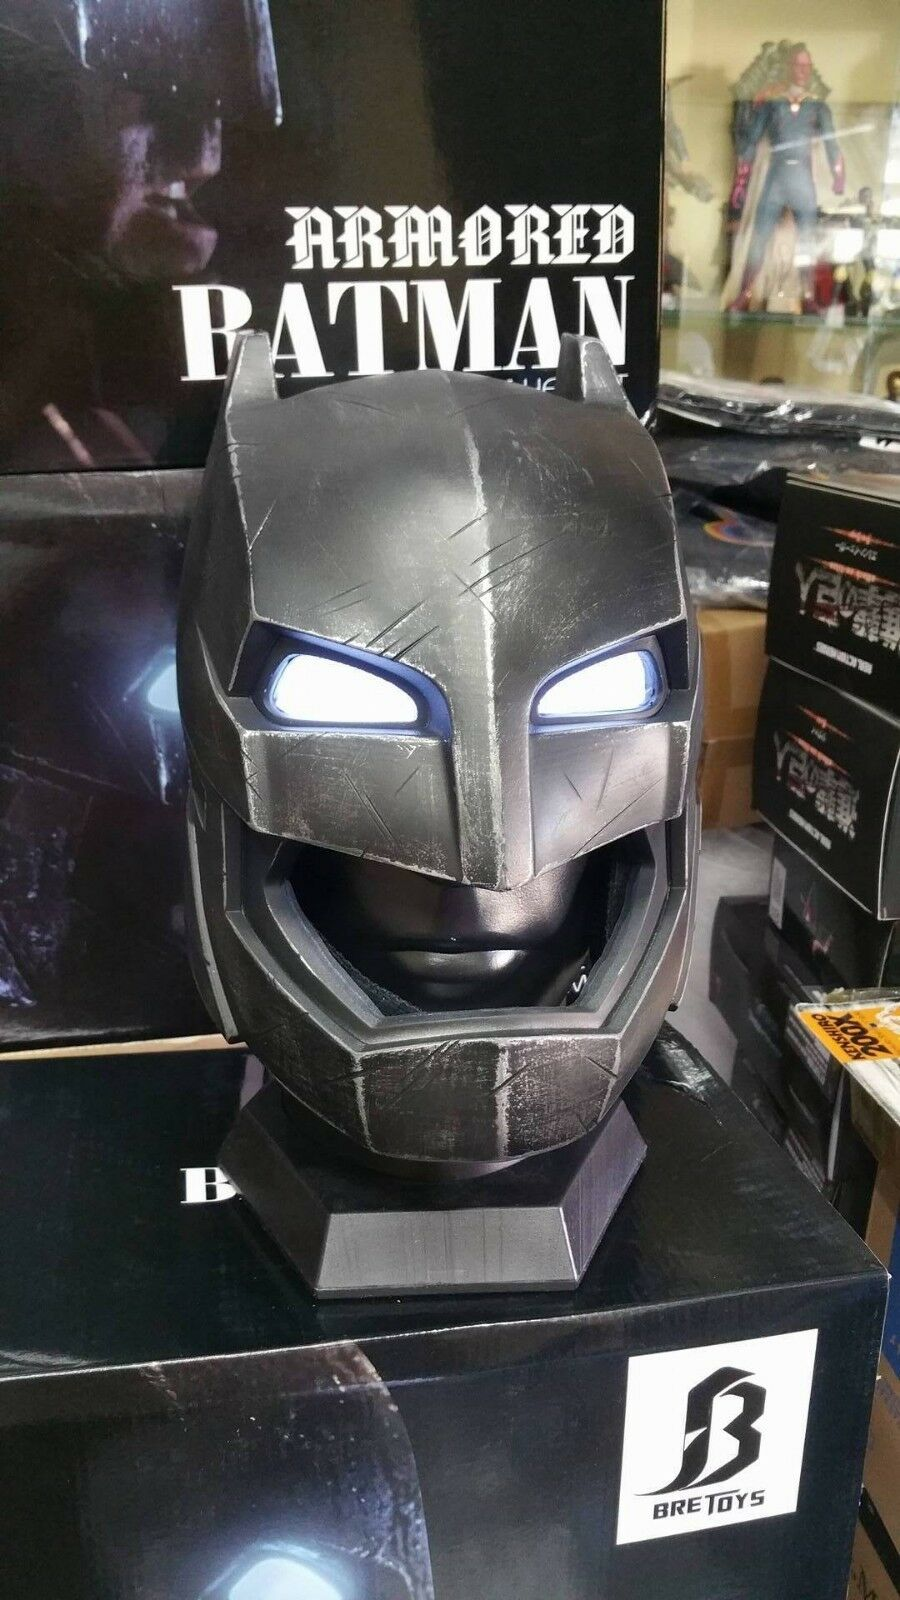 BRE TOYS BATMAN ARMORED HELMET CASCO 1 1 FULL SCALE INDOSSABILE LED EYES